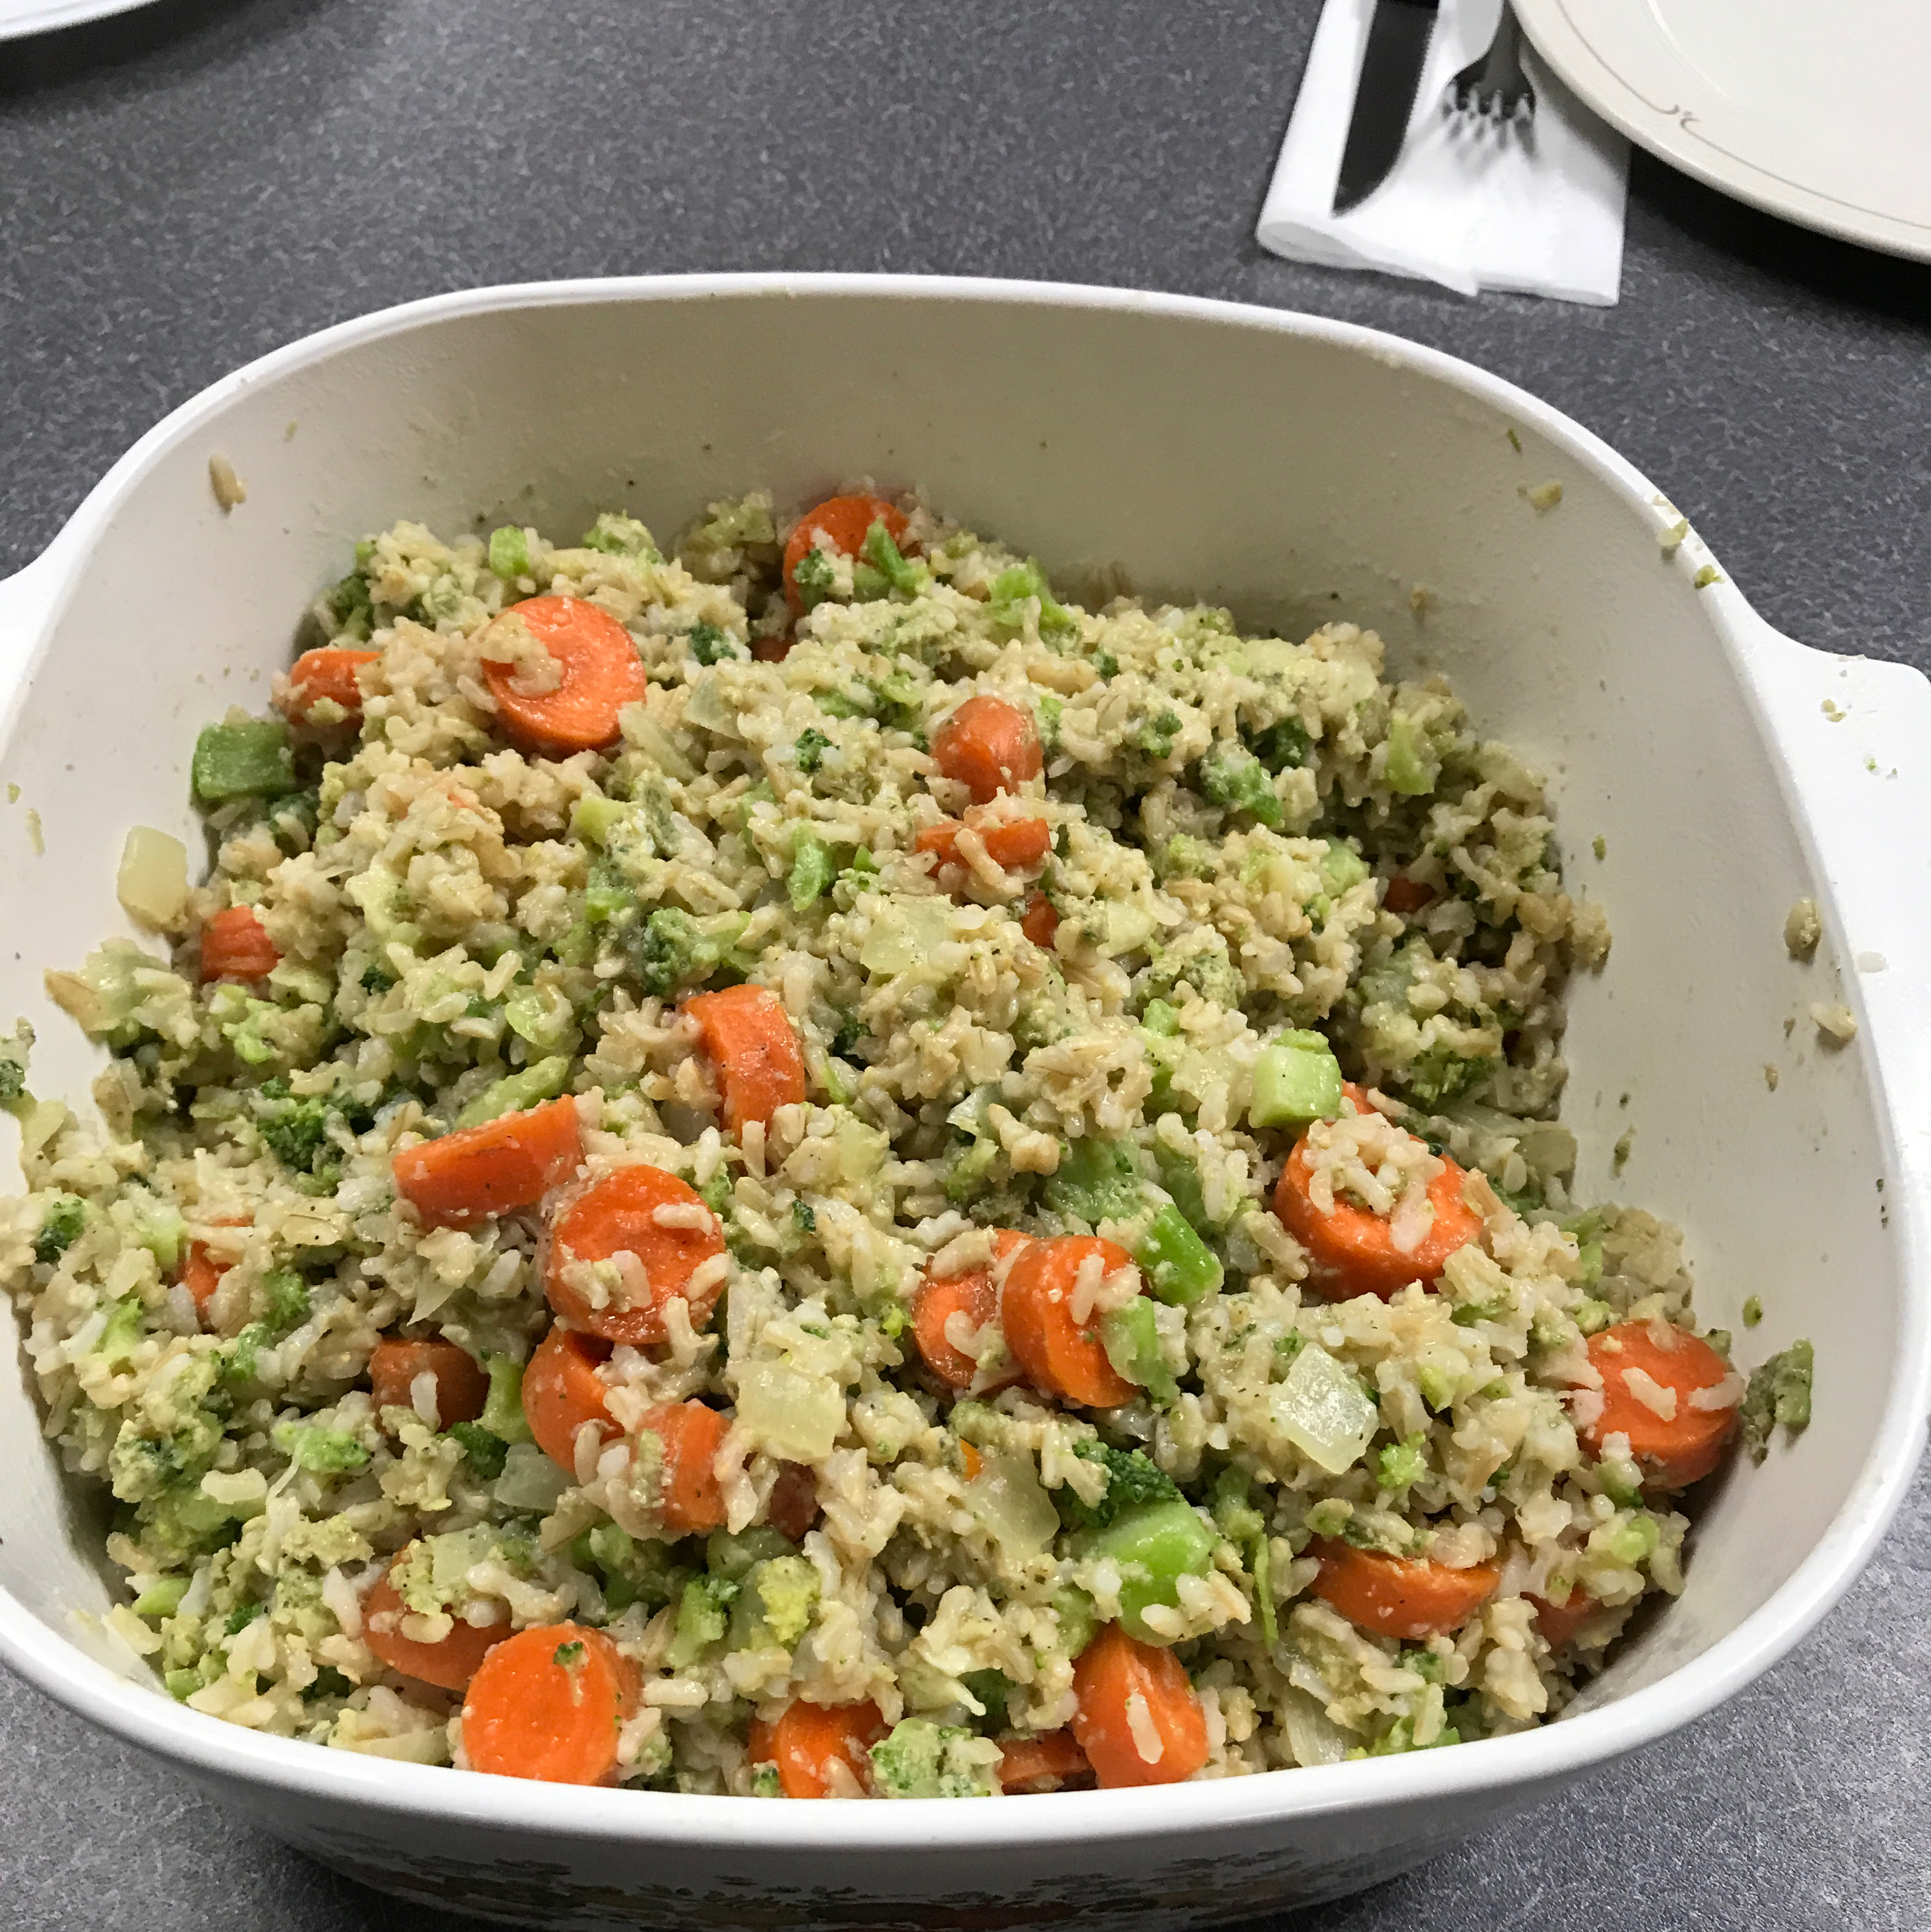 Home-Style Brown Rice Pilaf Chui8